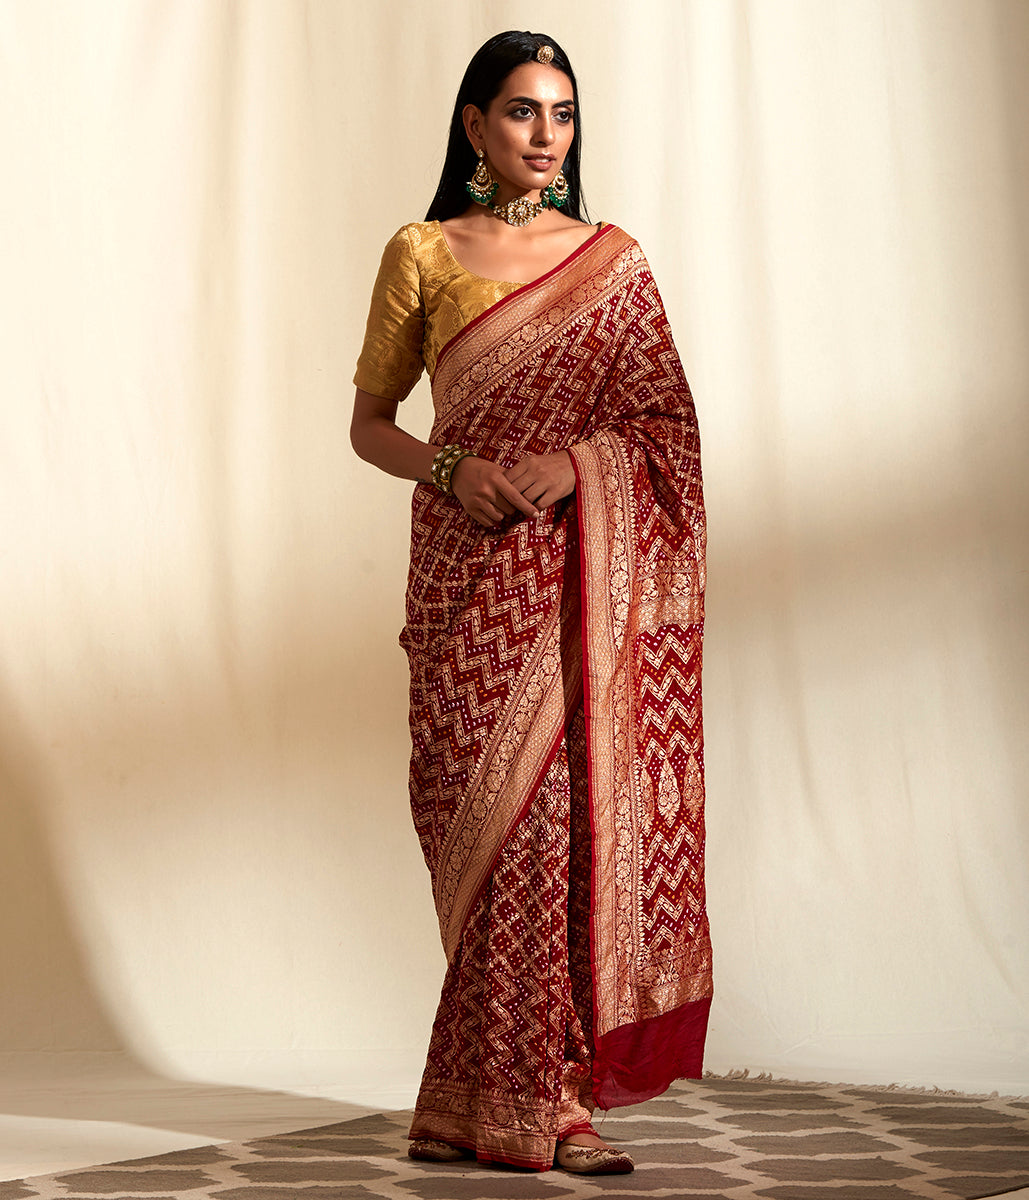 Handwoven Banarasi Bandhej Saree in Mahroon